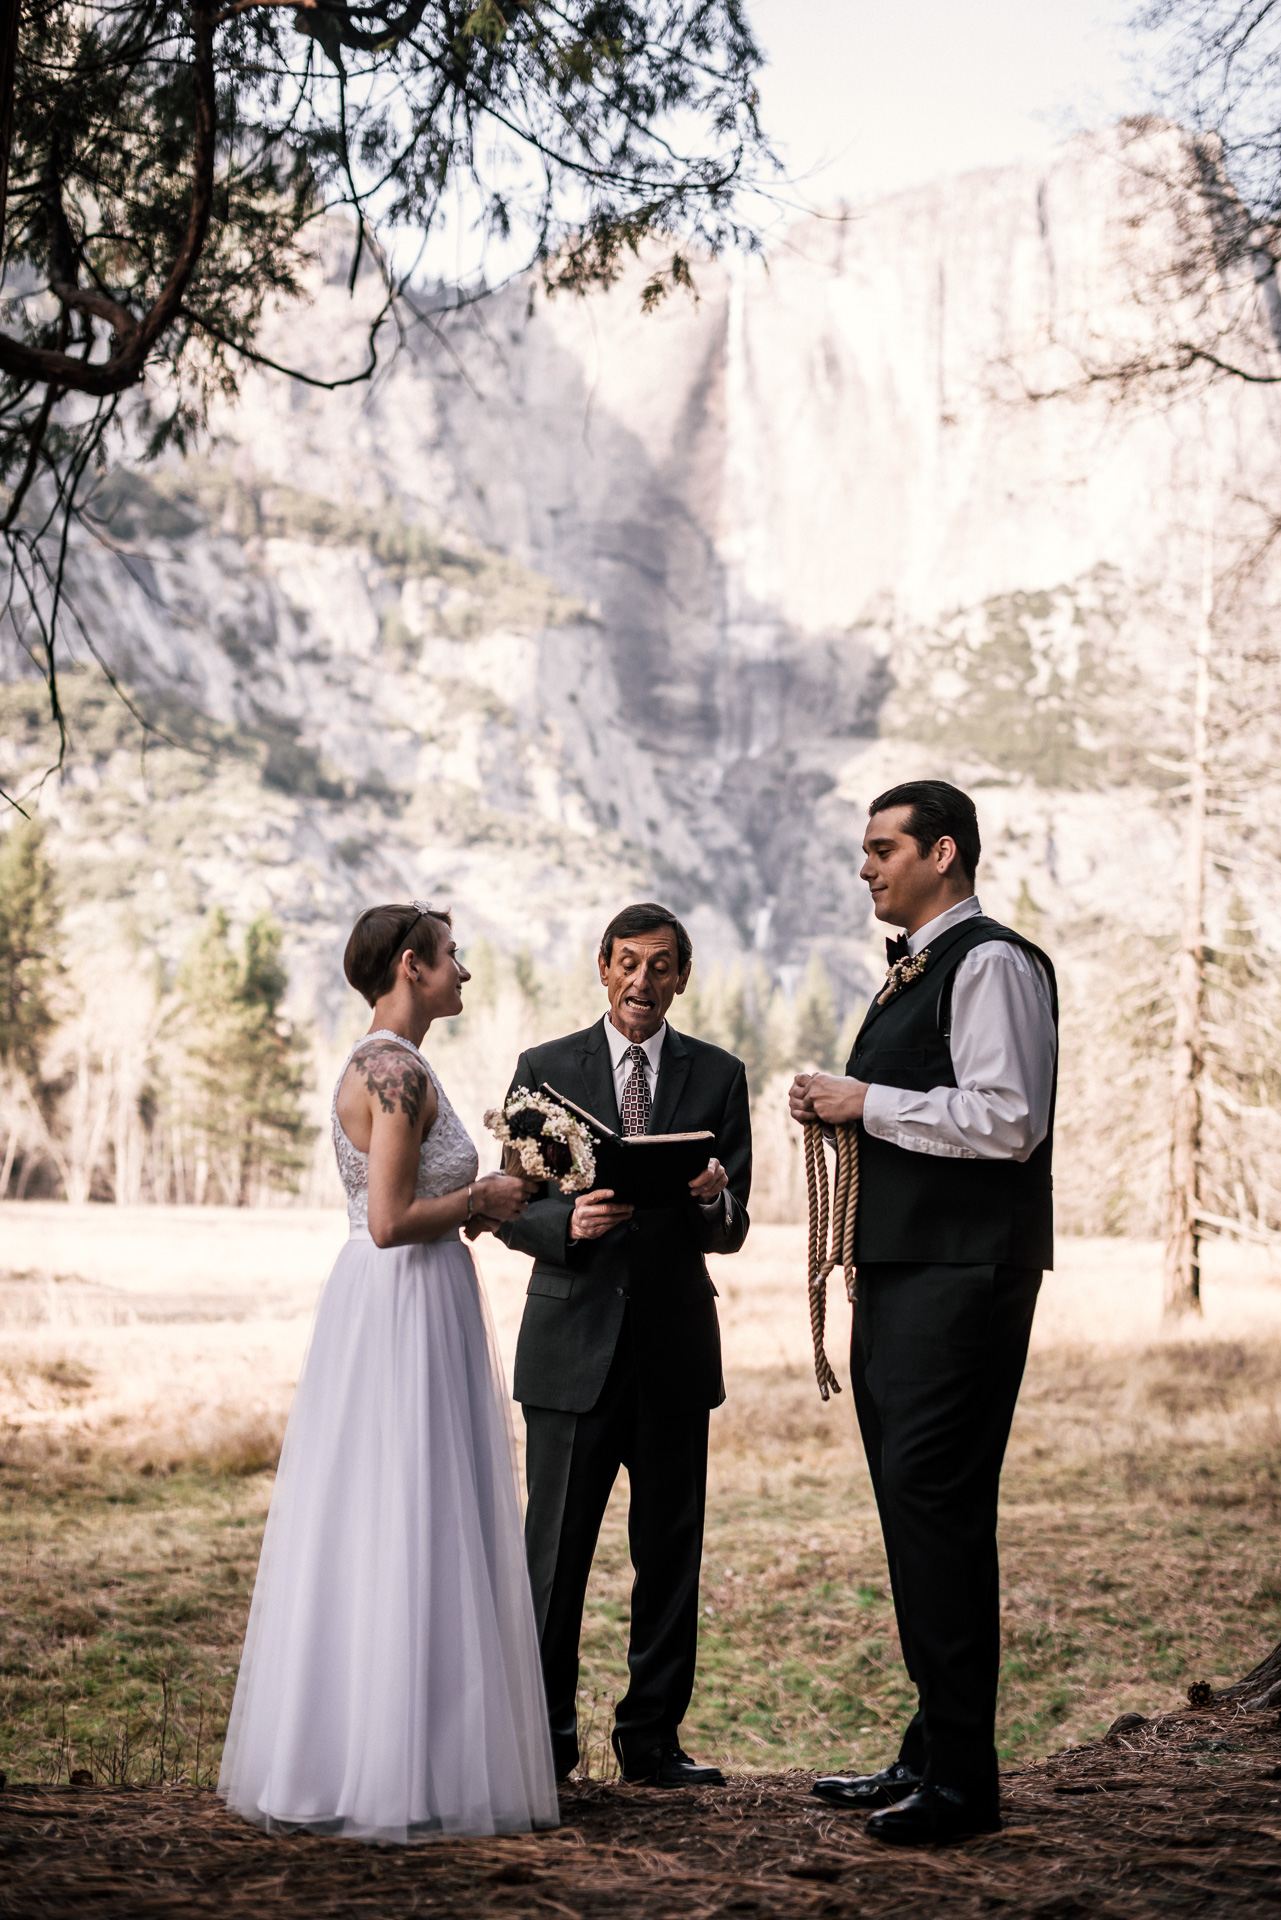 bride and groom prepare to tie the knot in yosemite national park